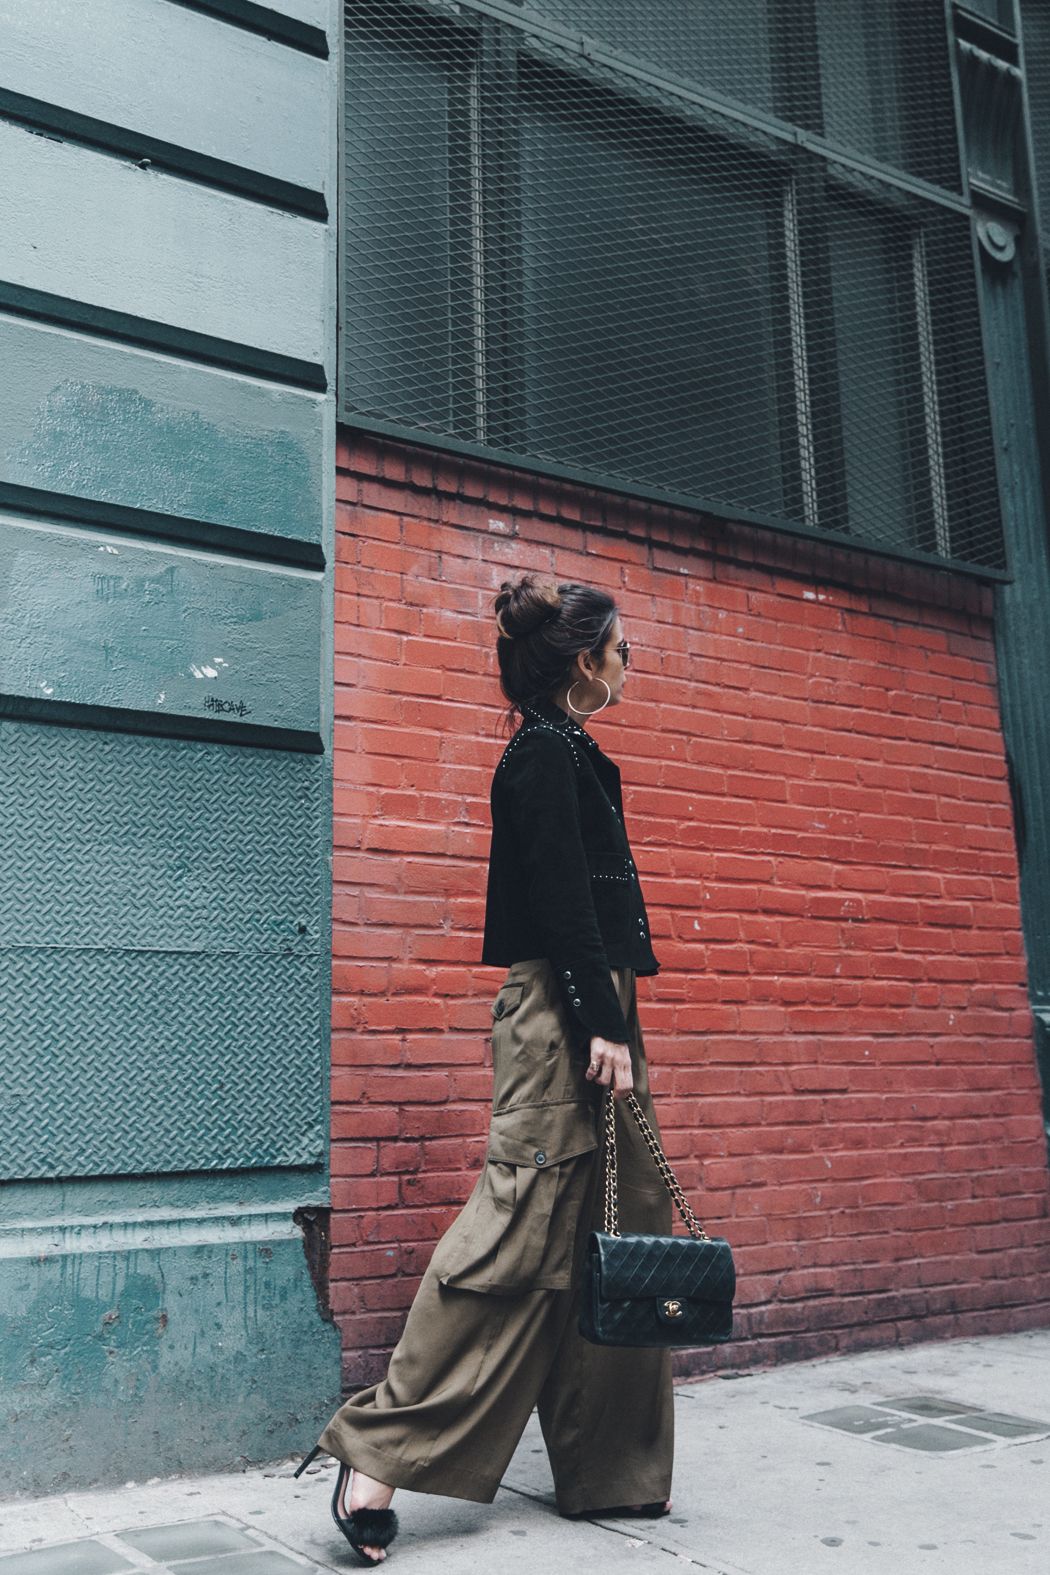 Khaki_Trousers-Sandro_Suede_Jacket-BNKR_Sandals-Fur_Sandals-Chanel_Bag-Outfit-Street_Style-NYC-10